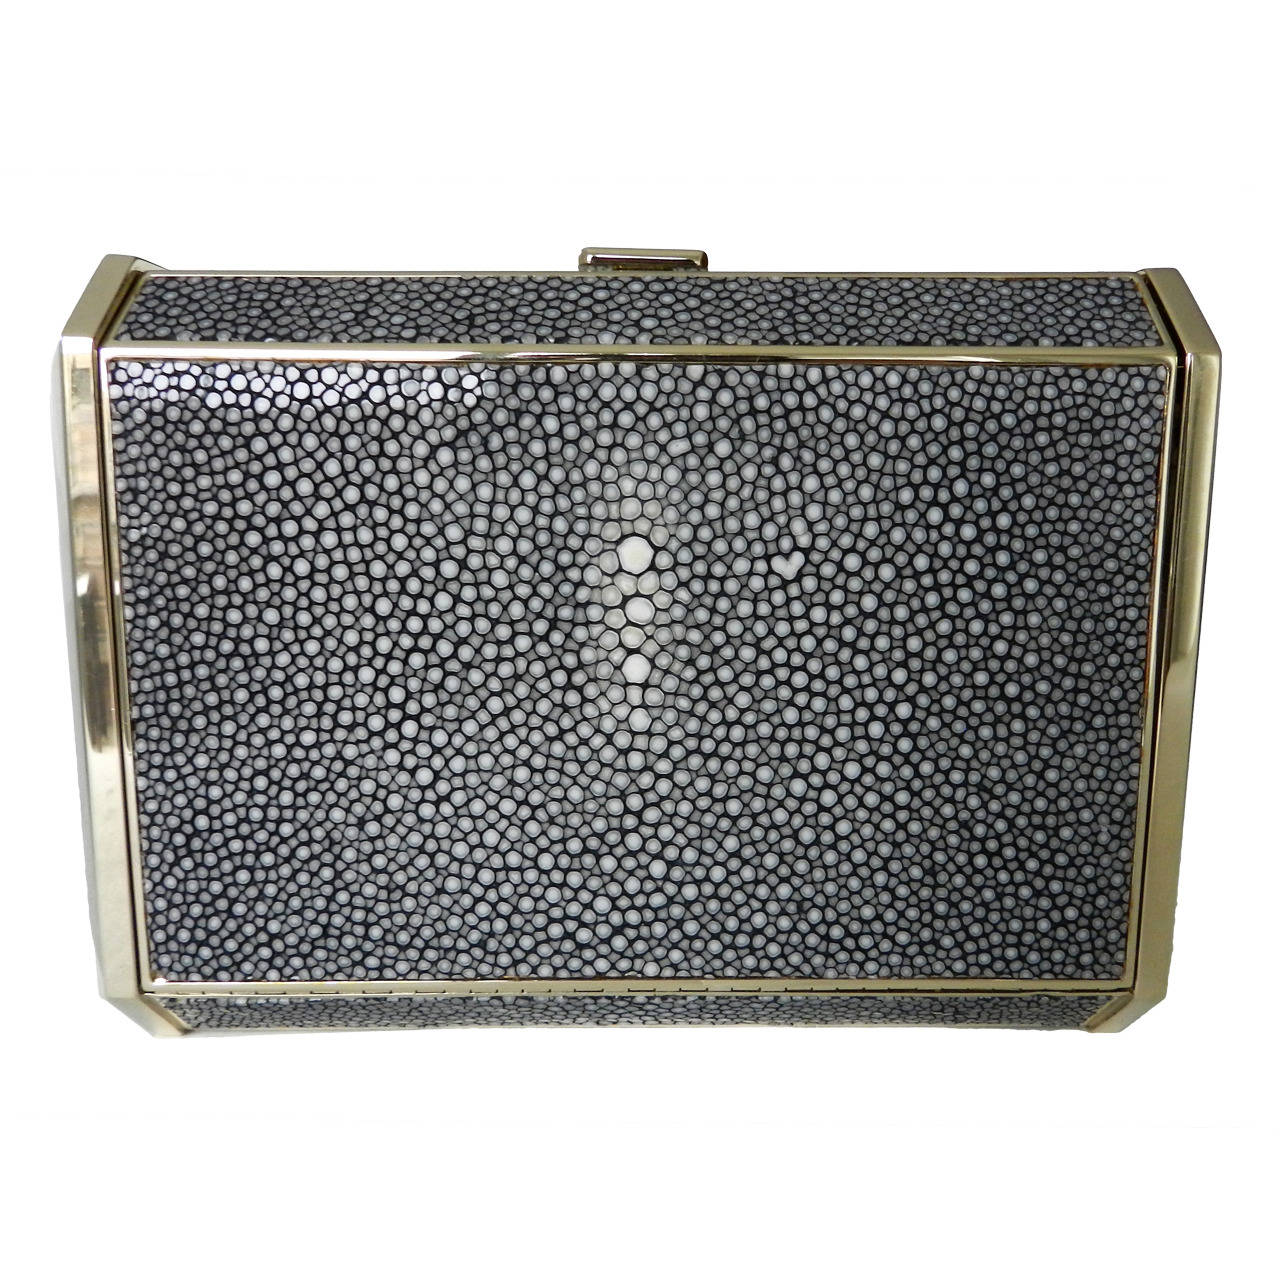 Lanvin Stingray and Resin Box Clutch Bag For Sale